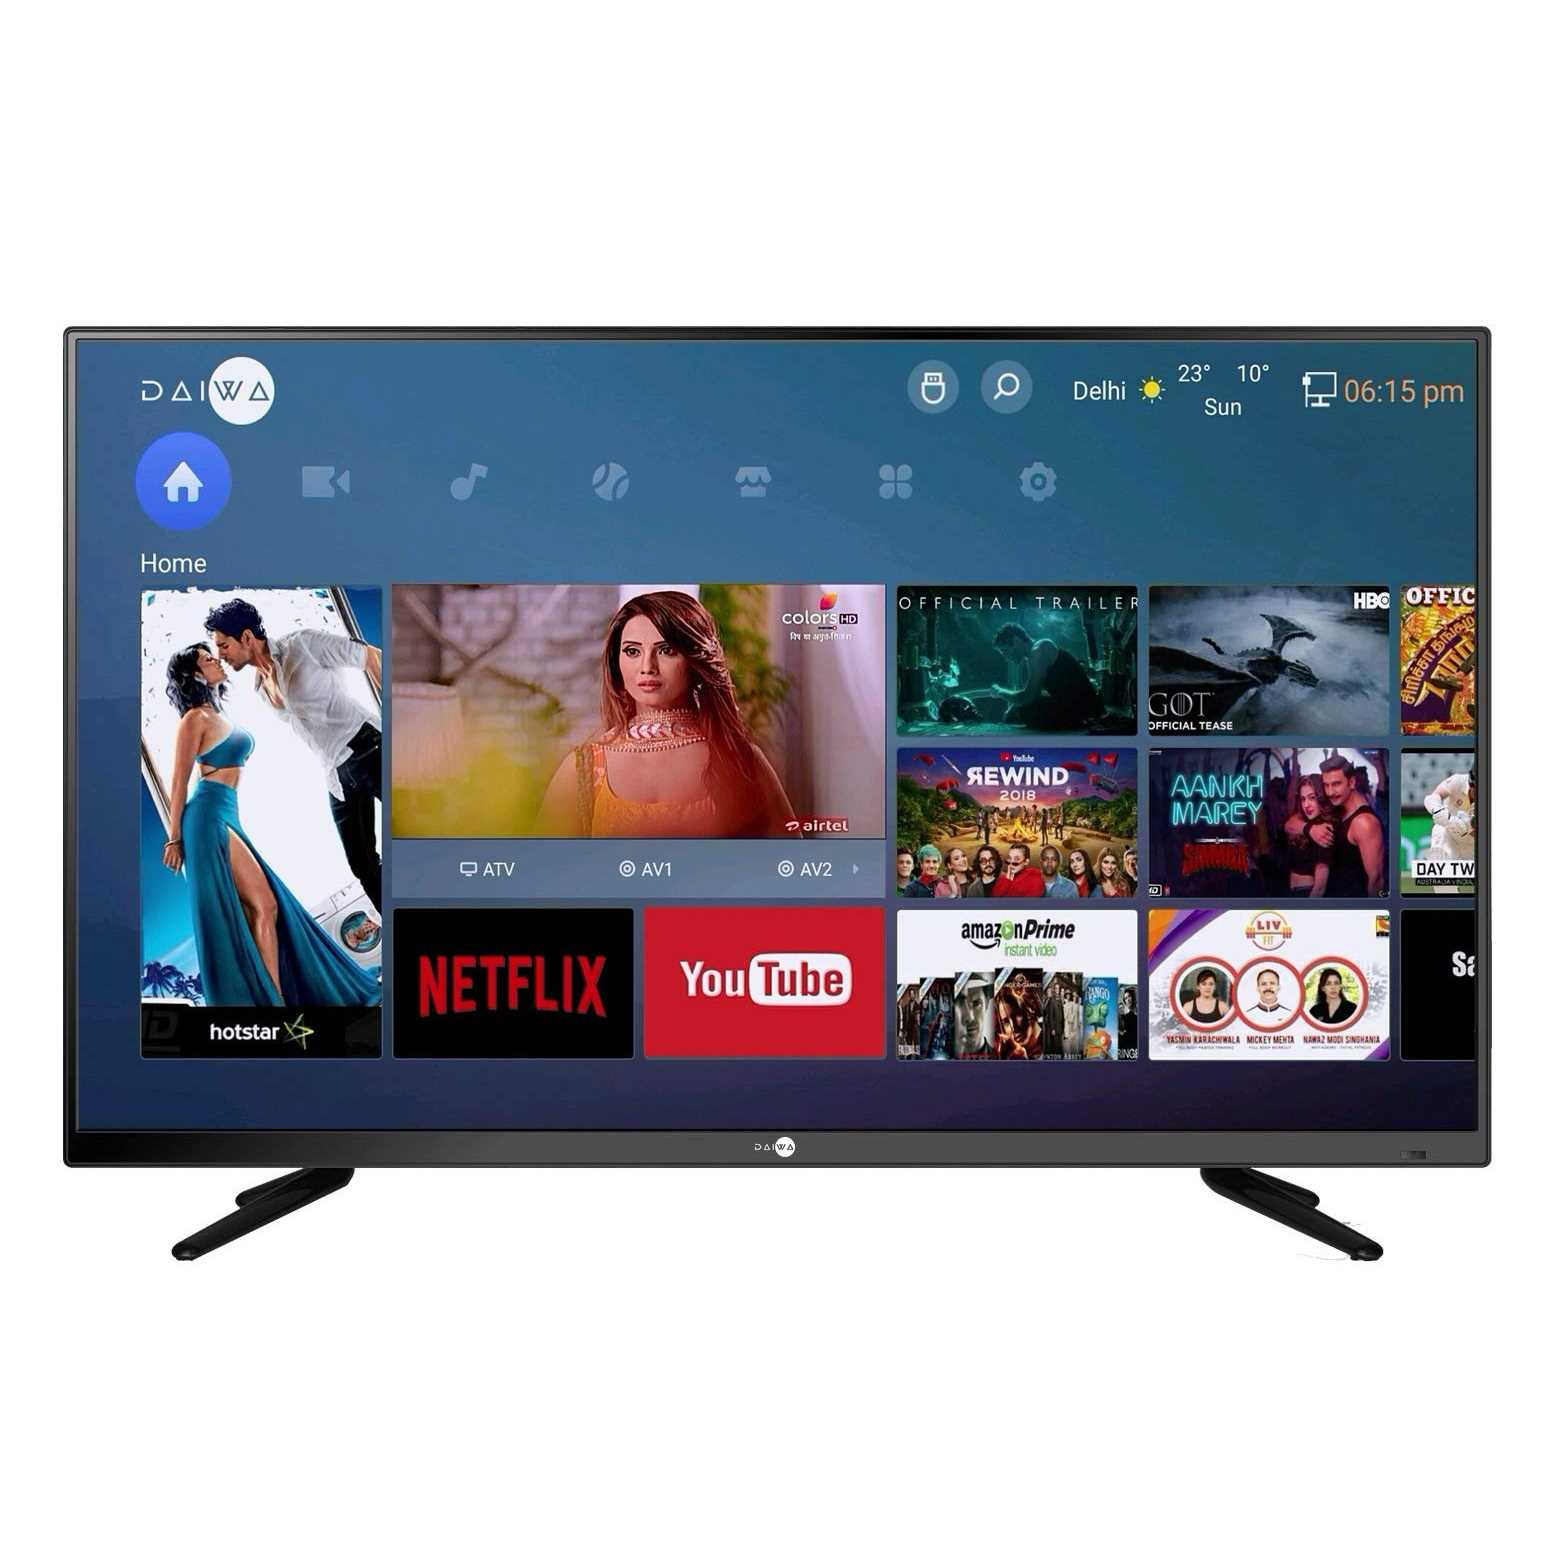 Daiwa D42E50S 40 Inch Full HD Smart LED Television